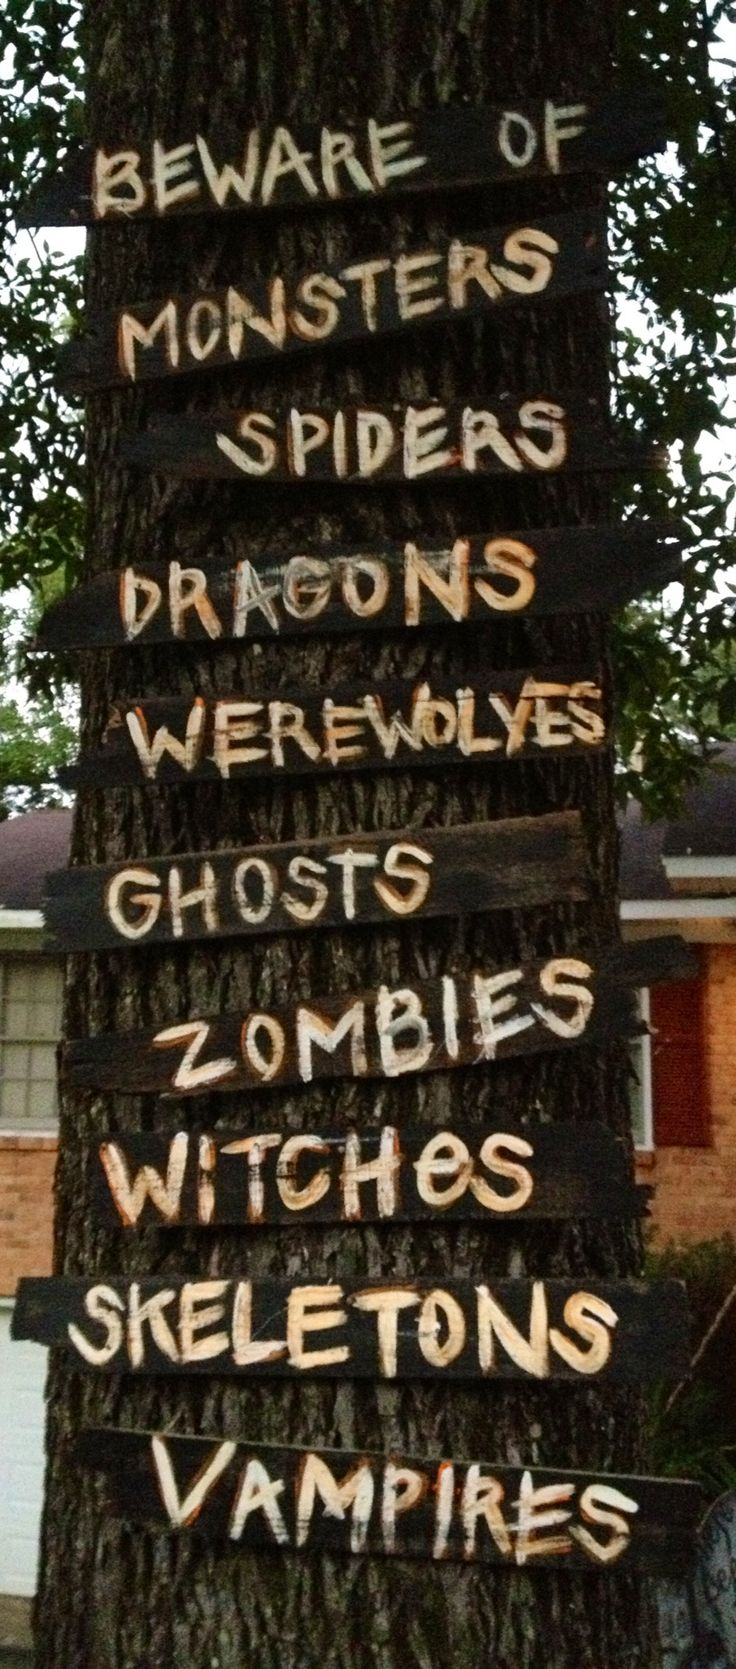 Outdoor halloween decorations for trees - Awesome Bet I Could Do This With Single Pallet Boards For Halloween Halloween Tree Decorationshalloween